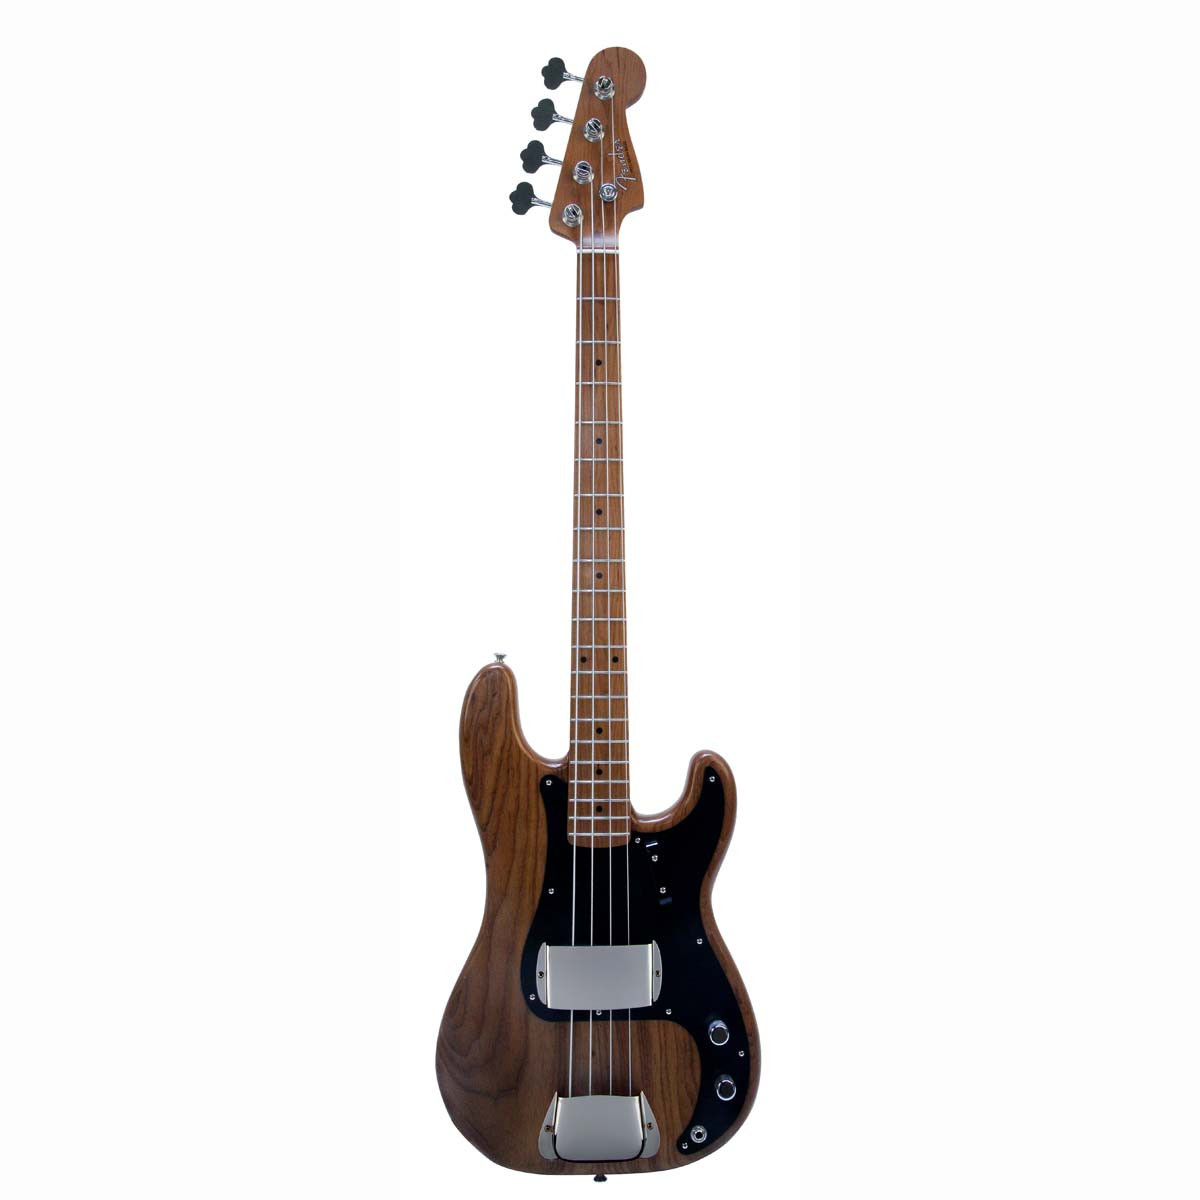 Fender FSR LTD 58Precision Bass Roasted Ash Nat el-bas